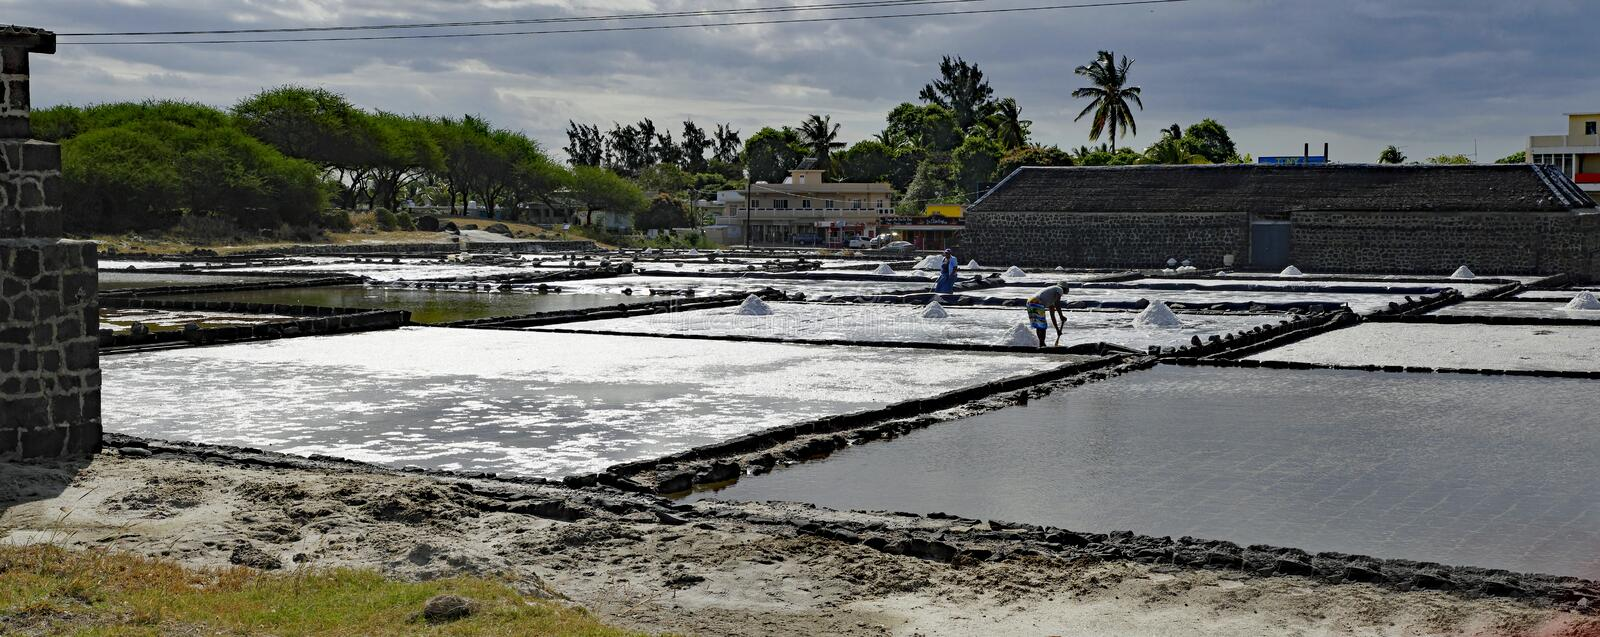 Tamarin Salt Pans. Mauritius. TAMARIN/MAURITIUS - AUGUST 24, 2018: Tamarin Salt Pans is a popular tourist attraction with the square brick clay basins.This place royalty free stock images